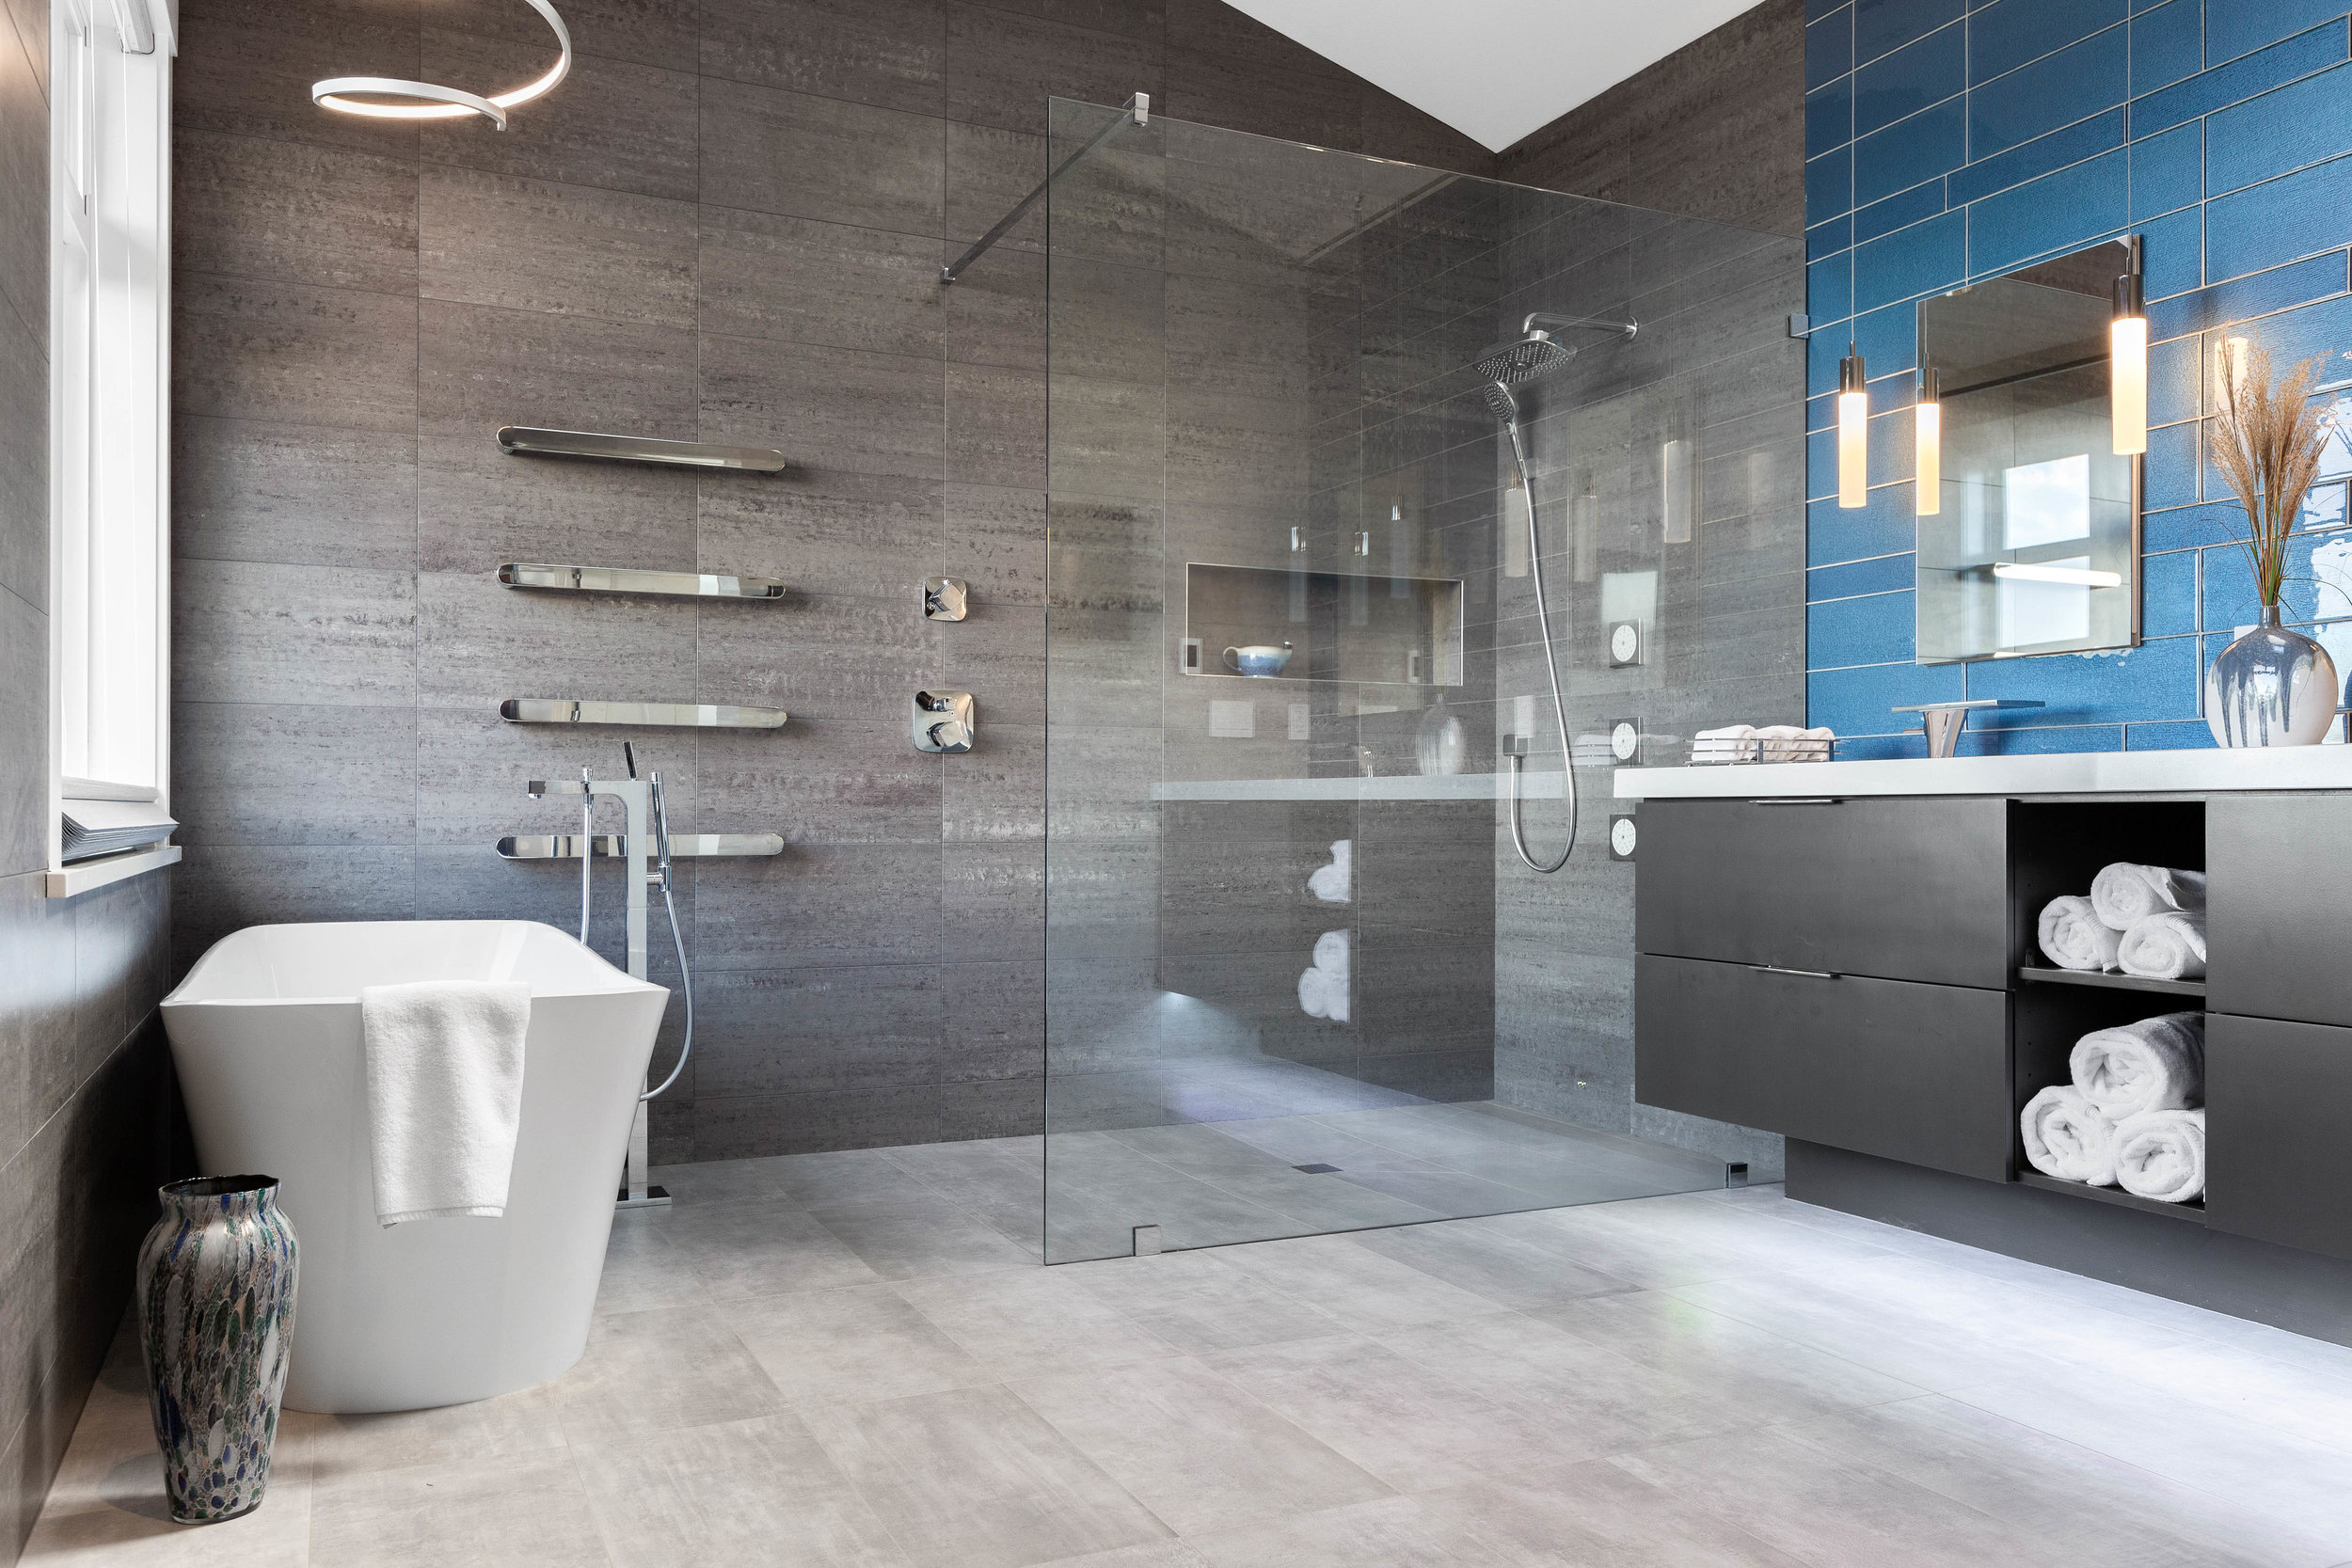 TREEFROGDESIGN_CONTEMPORARY.BATH.jpg